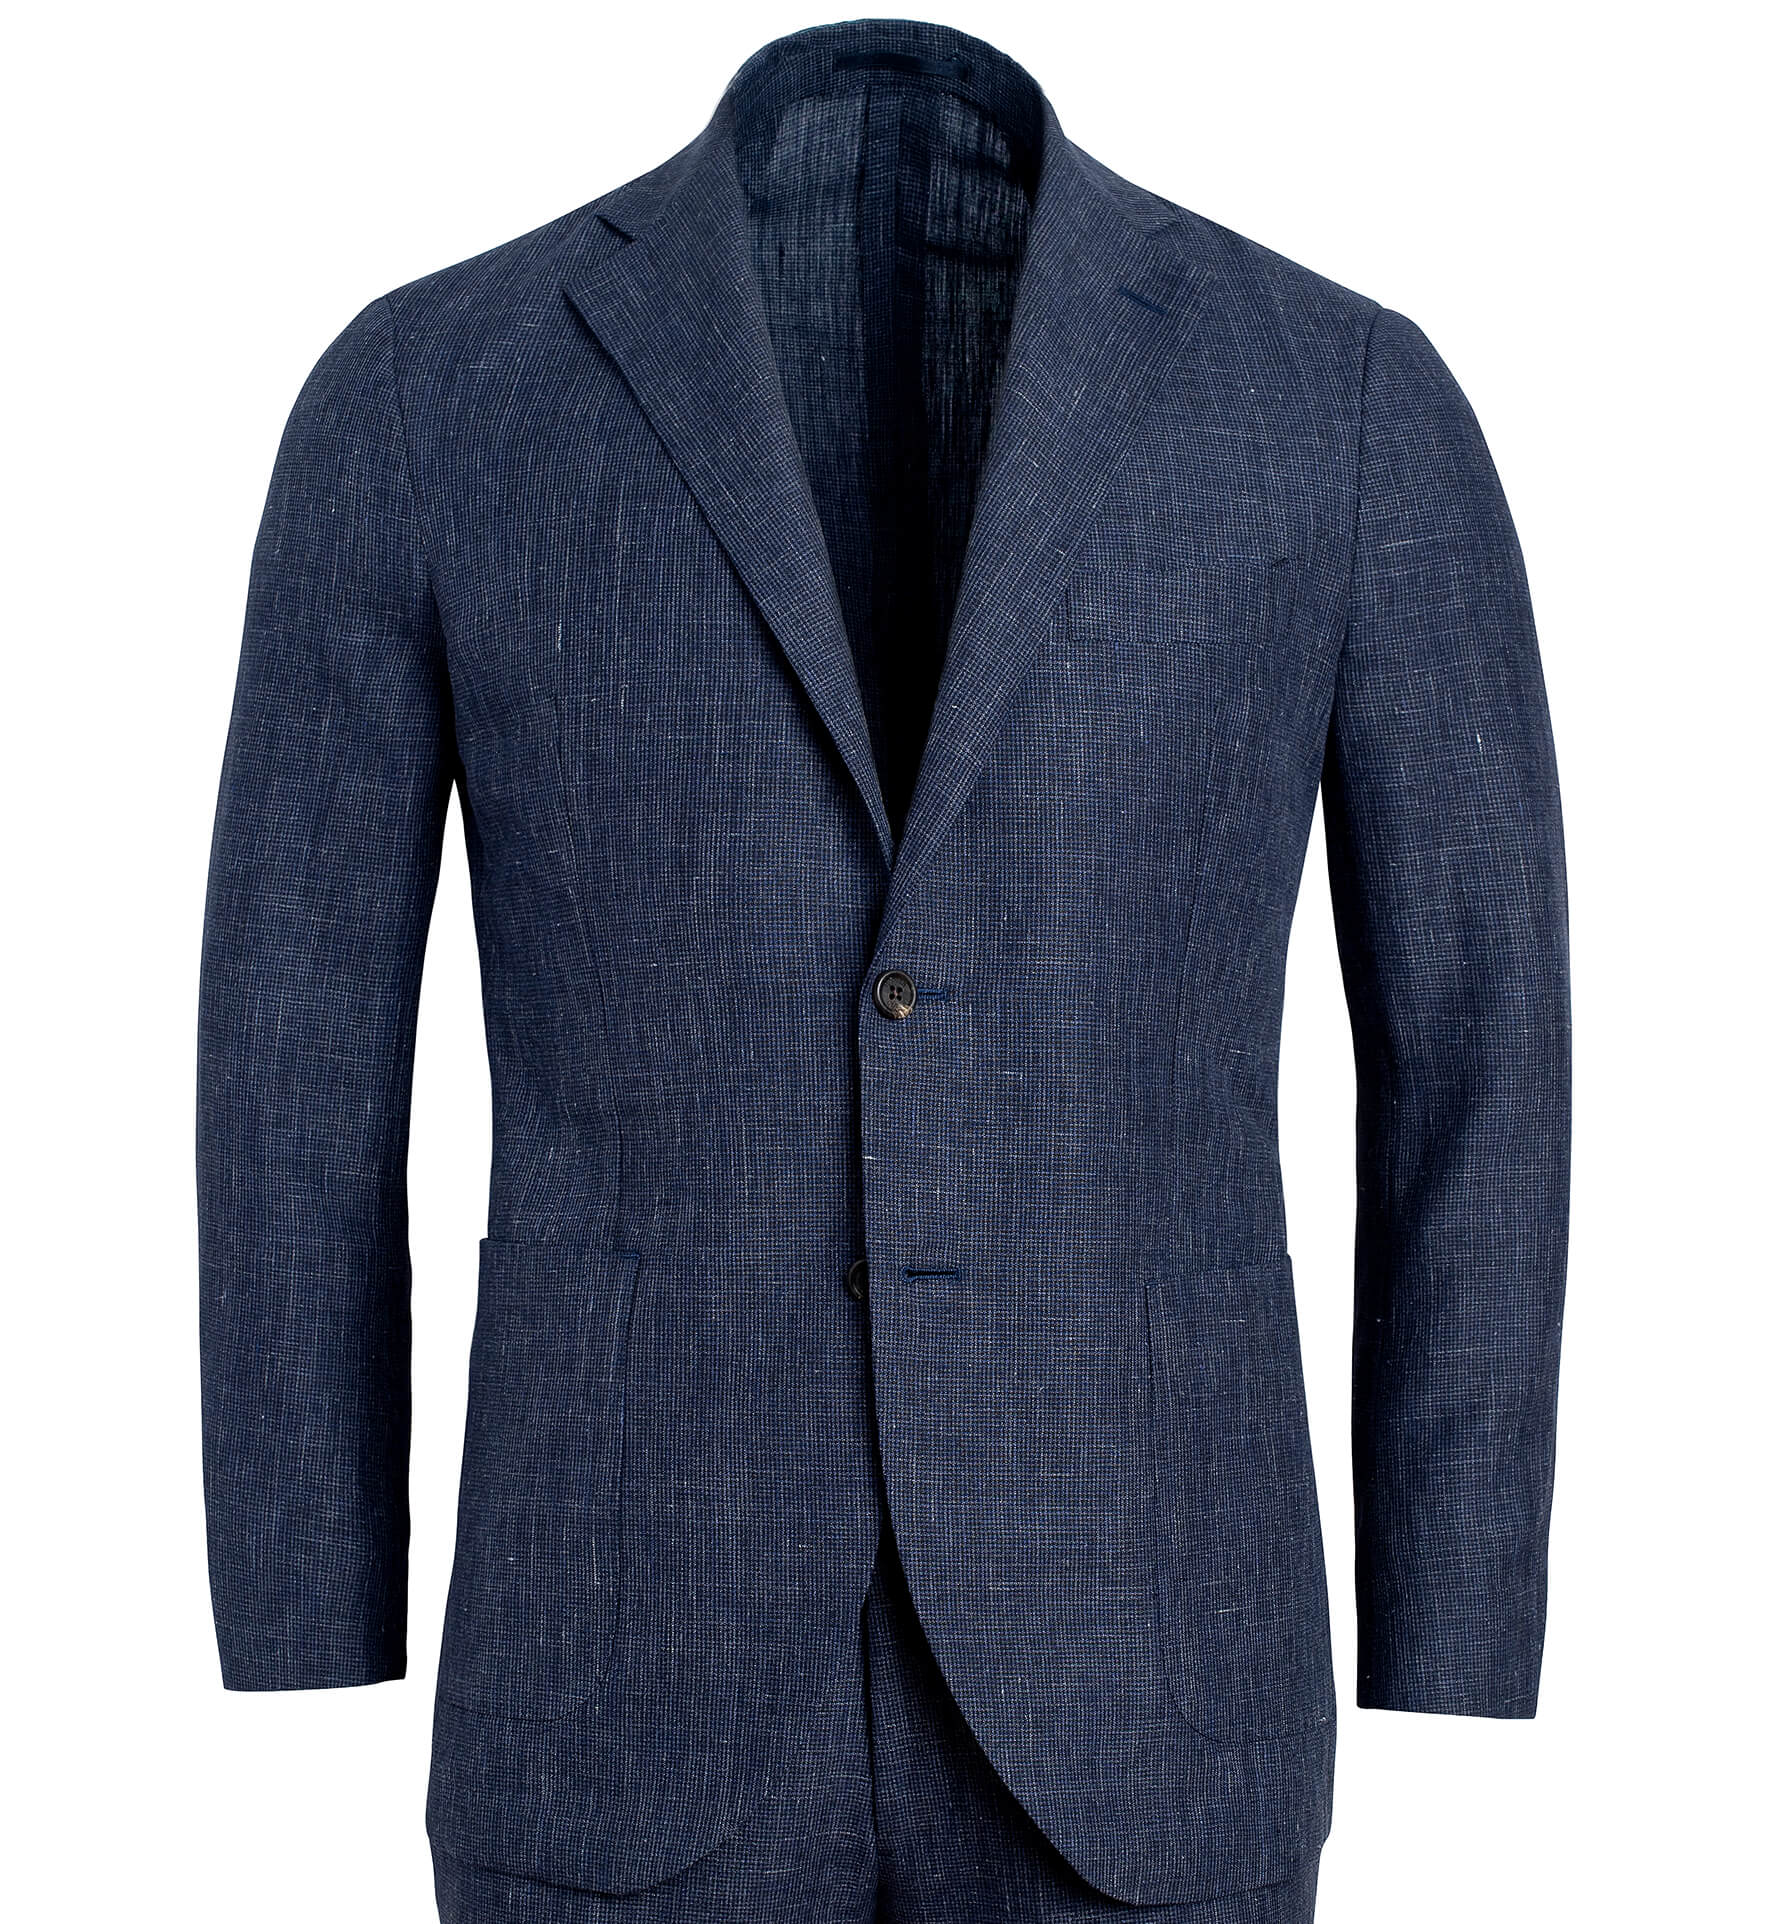 Zoom Image of Bedford Slate Houndstooth Wool and Linen Suit Jacket